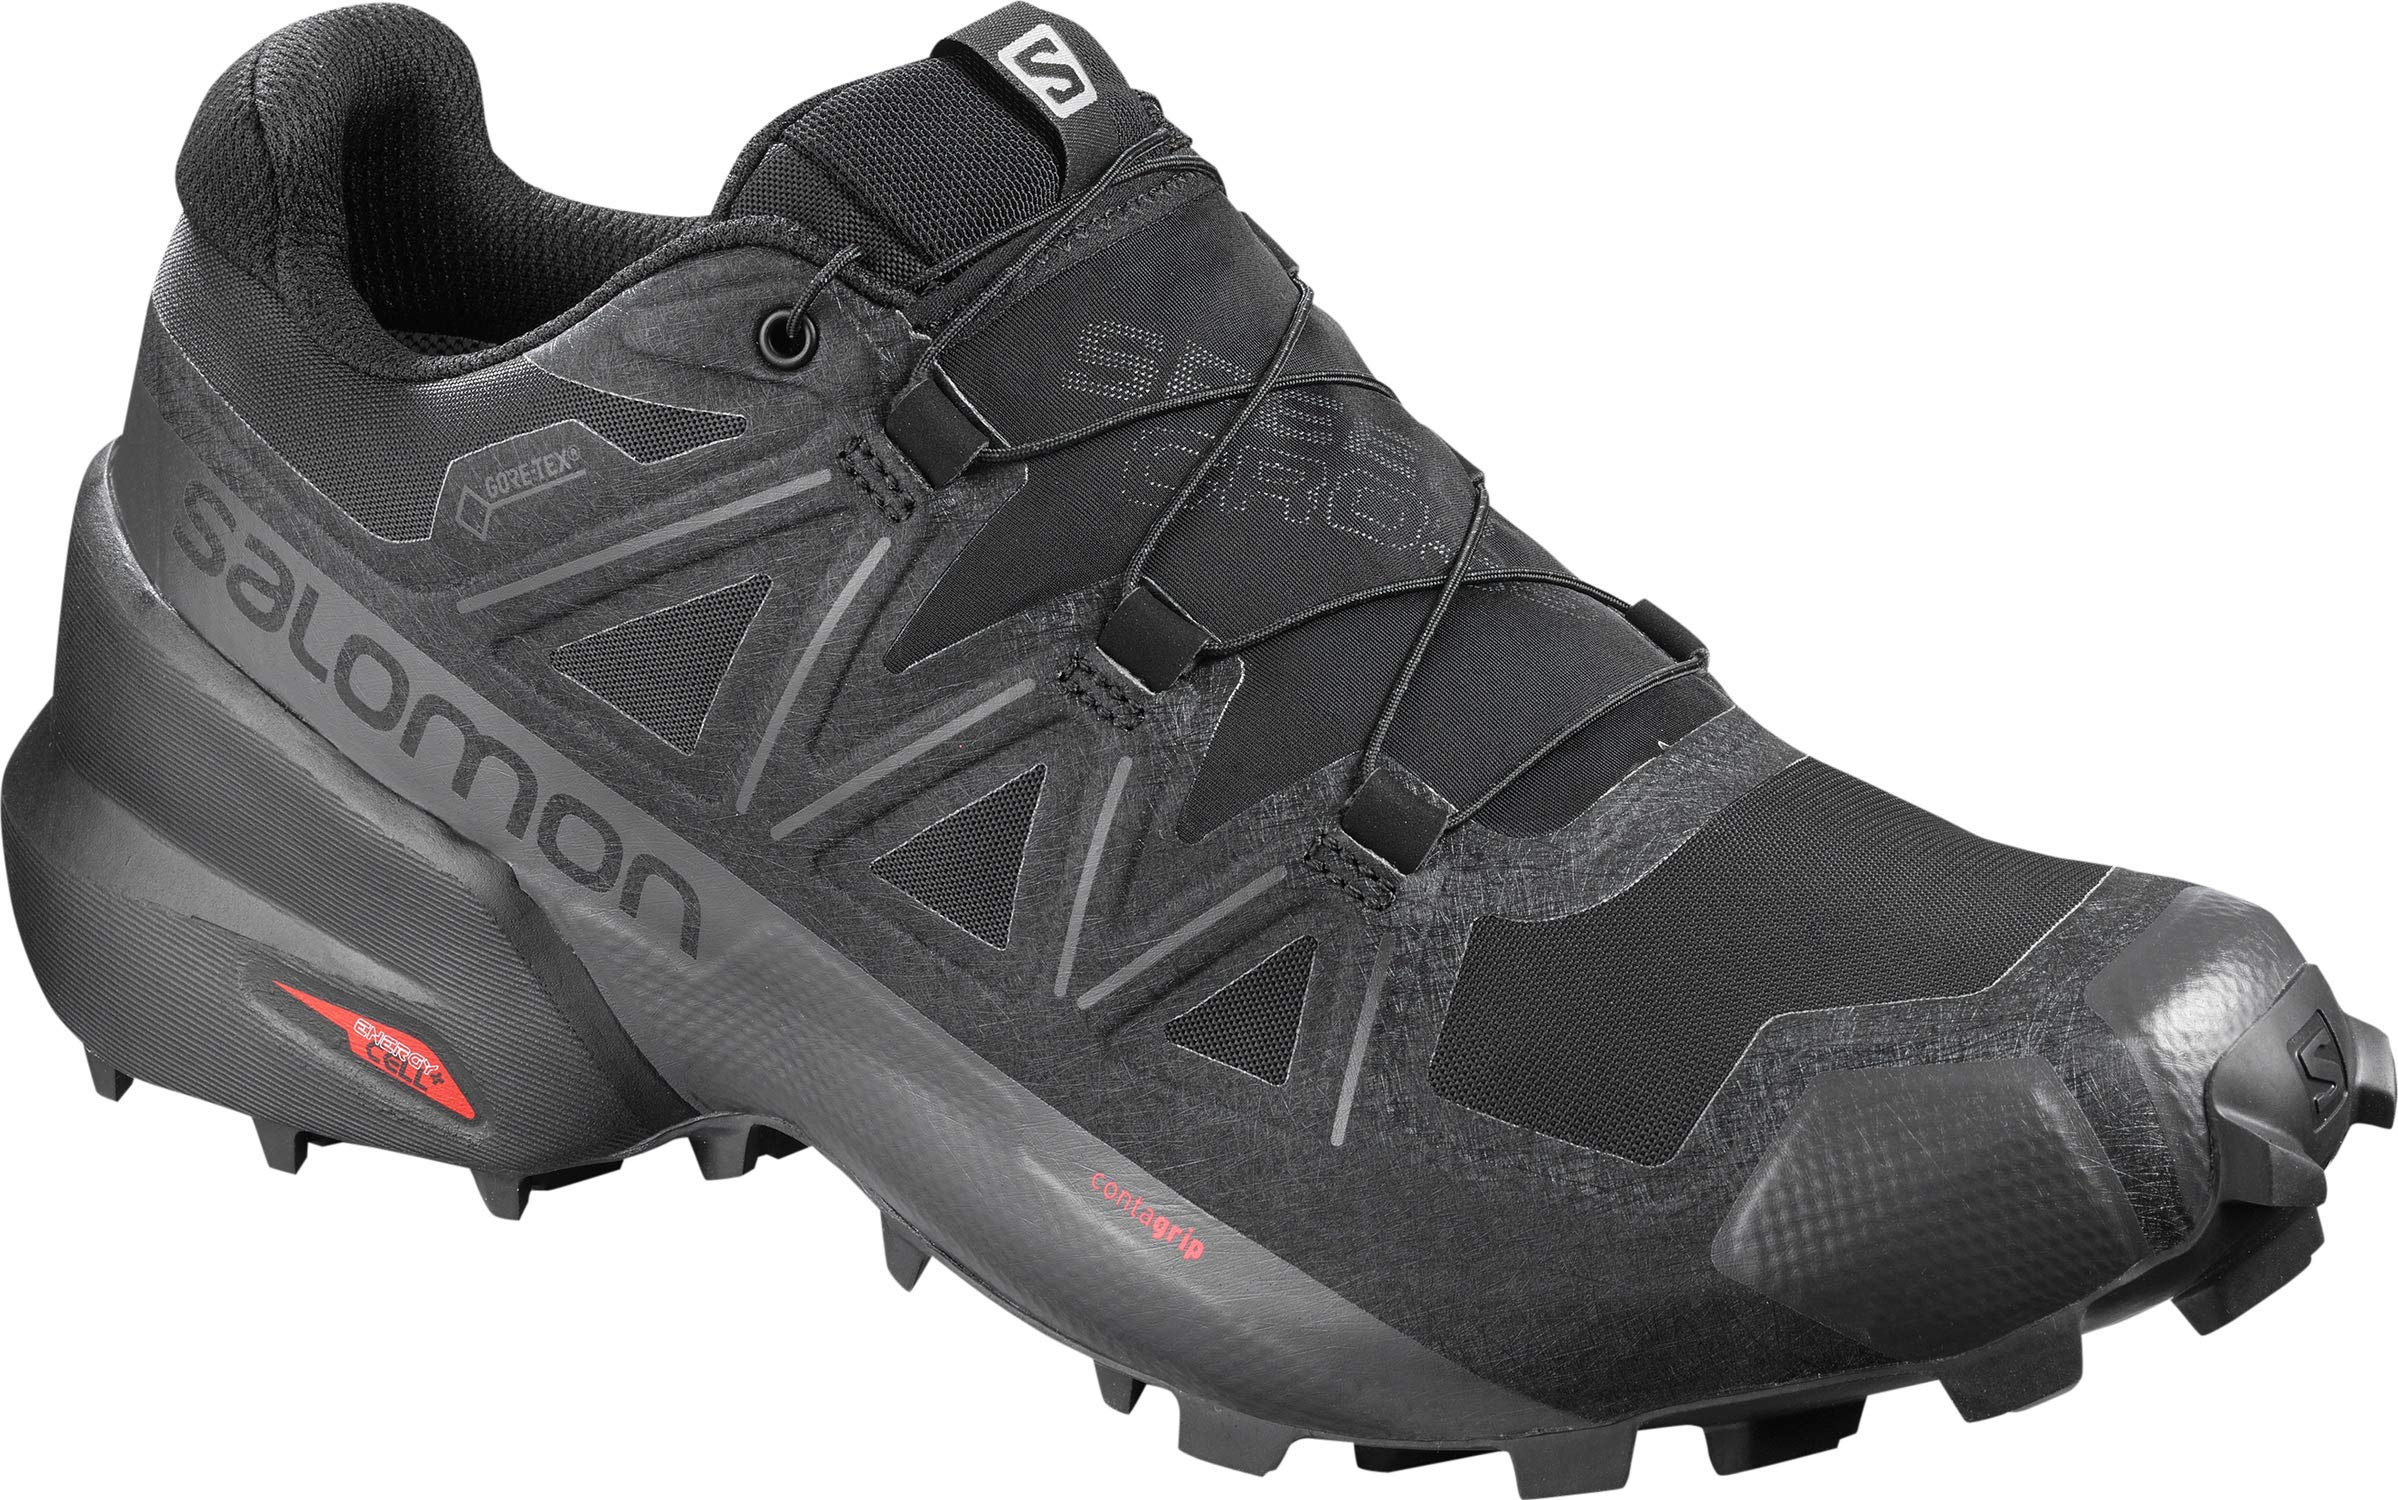 SALOMON SPEEDCROSS 5 GTX MEN'S TRAIL RUNNING SHOES BLACK/BLACK/PHANTOM SZ 11 by Salomon